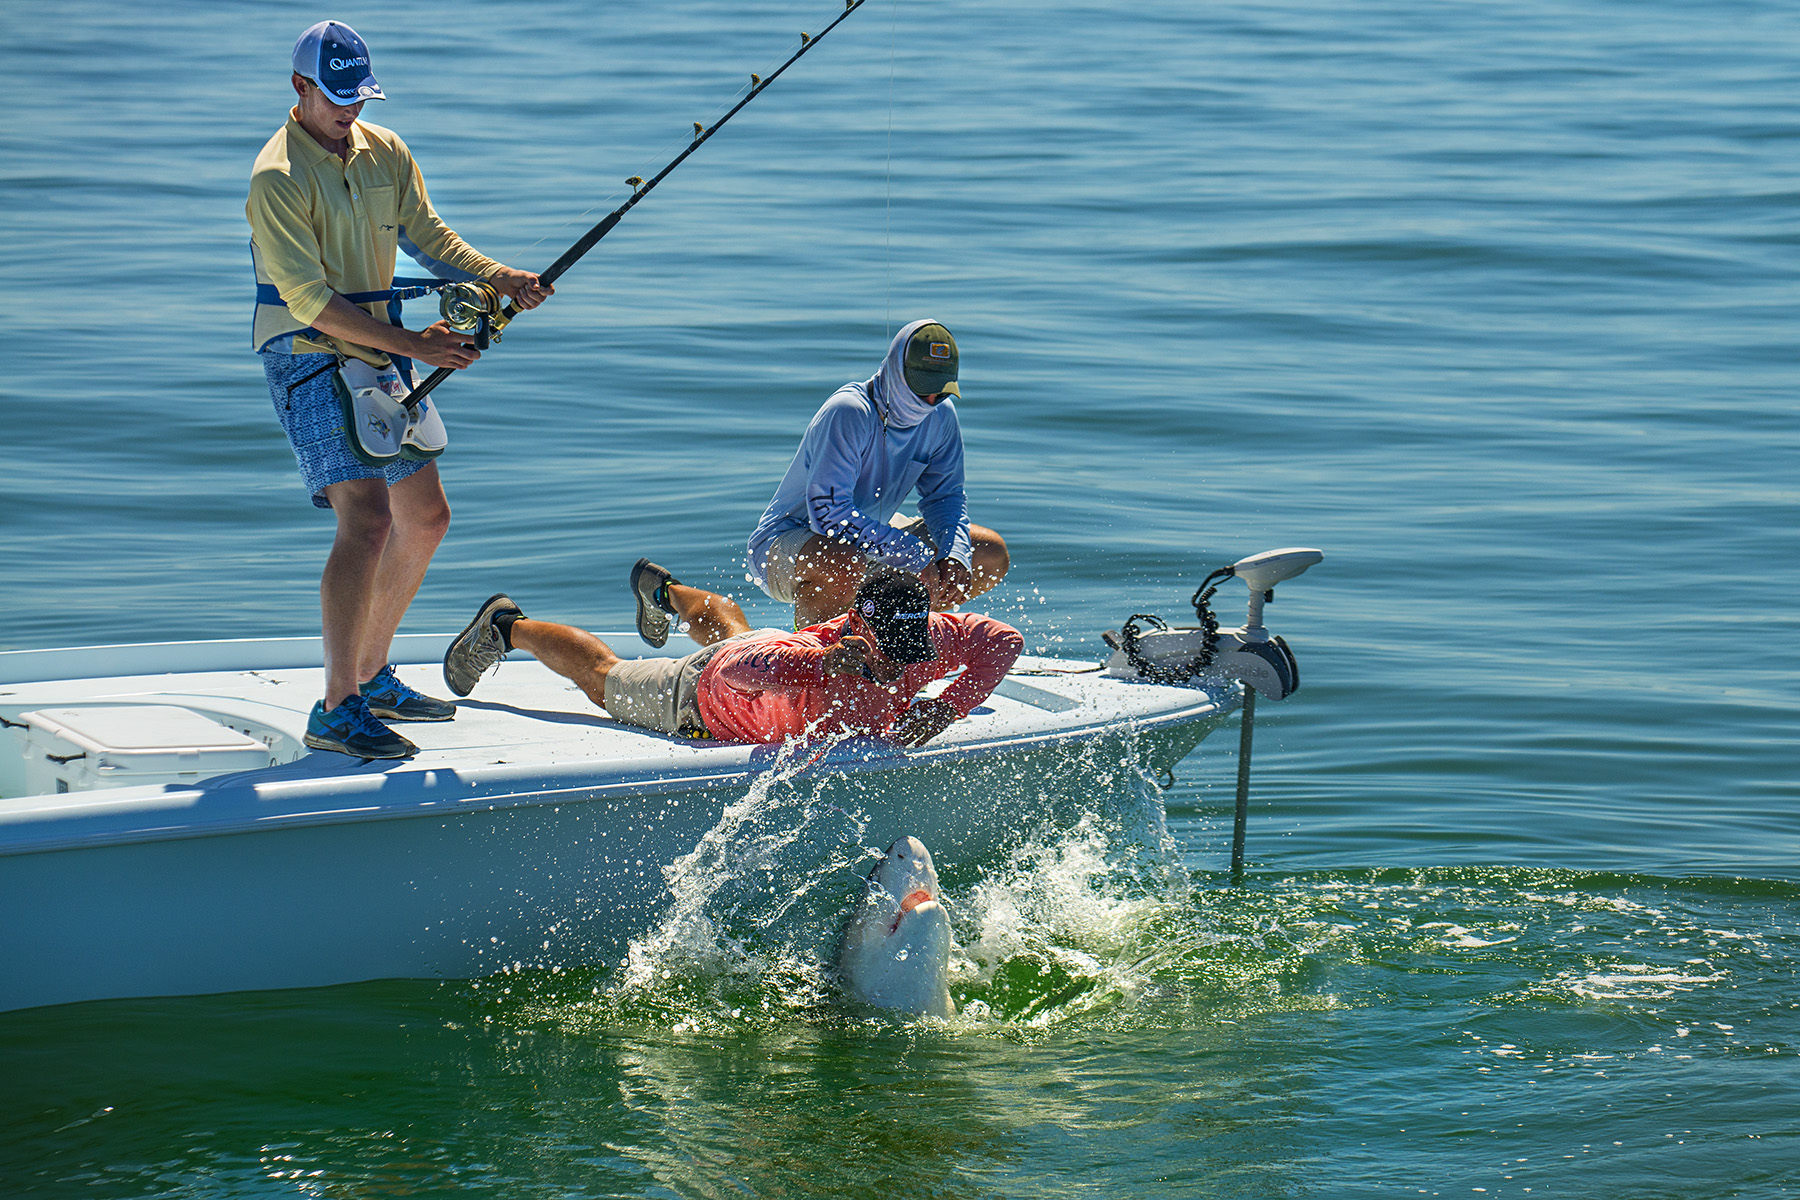 big-shark-florida-keys-saltwater-experience-tom-rowland-jason-stemple